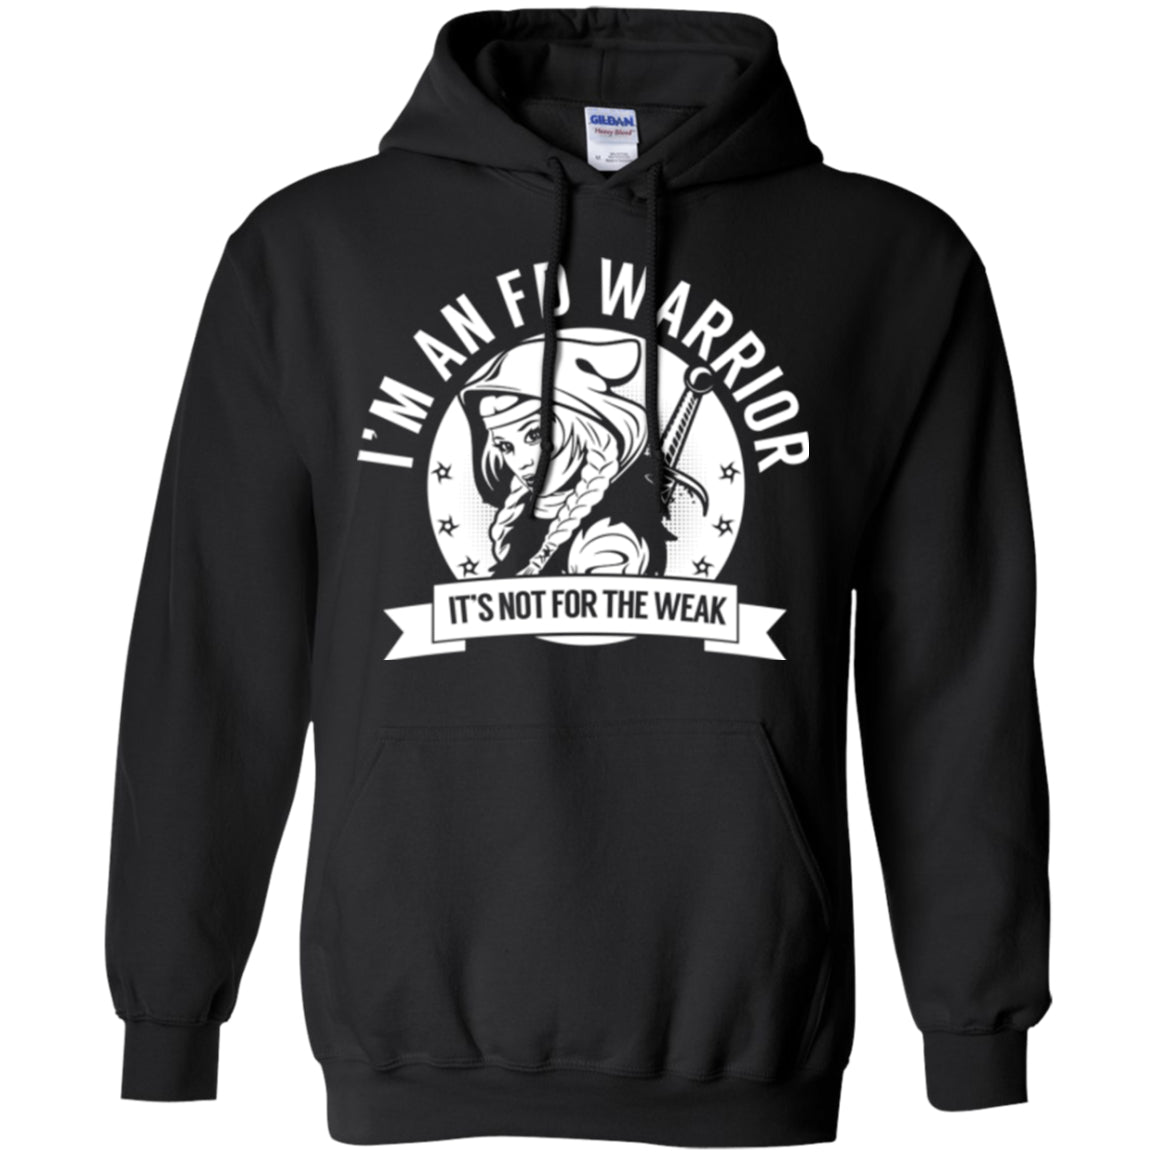 Fibrous Dysplasia - FD Warrior Hooded Pullover Hoodie 8 oz. - The Unchargeables